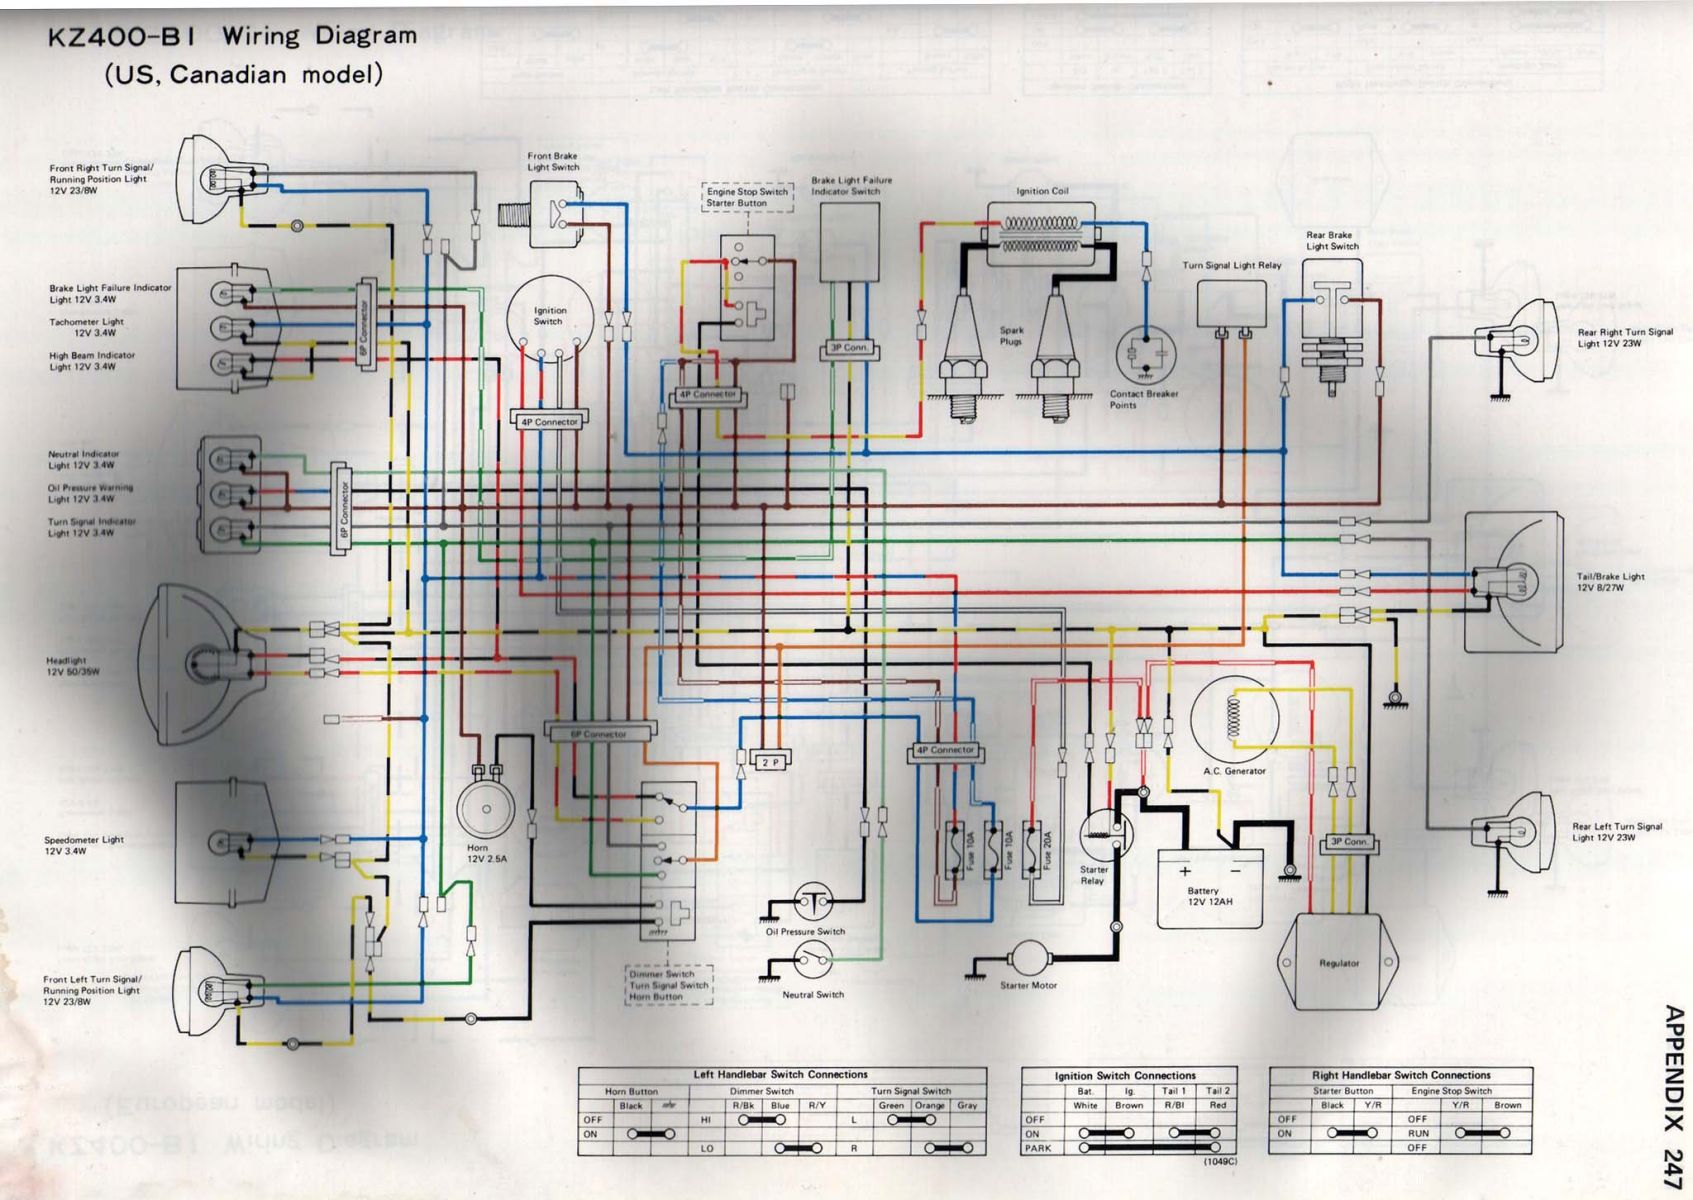 Wiring Diagram Receiver Wiring Diagram Kawasaki Klr 650 Wiring Diagram